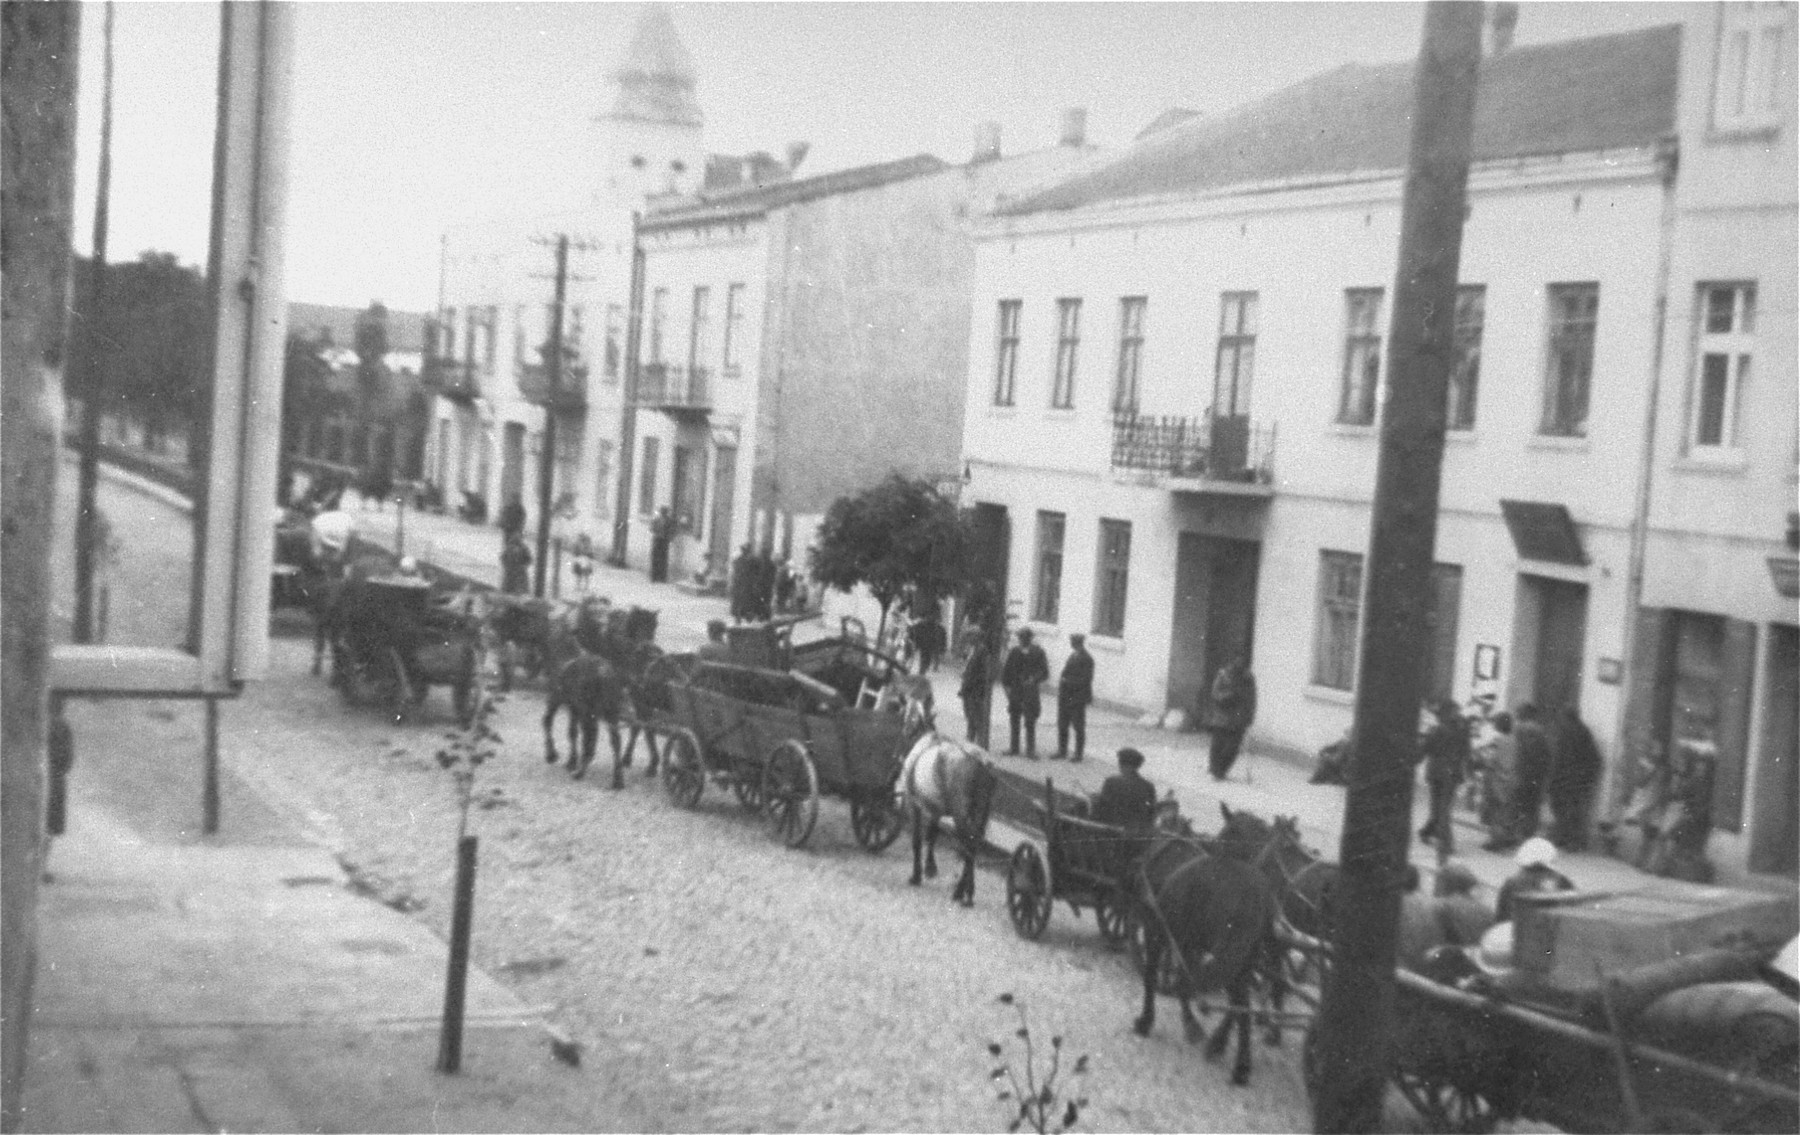 Horse-drawn wagons are lined up along Kosciuszko Street in Belchatow during the relocation of Jews to the ghetto.